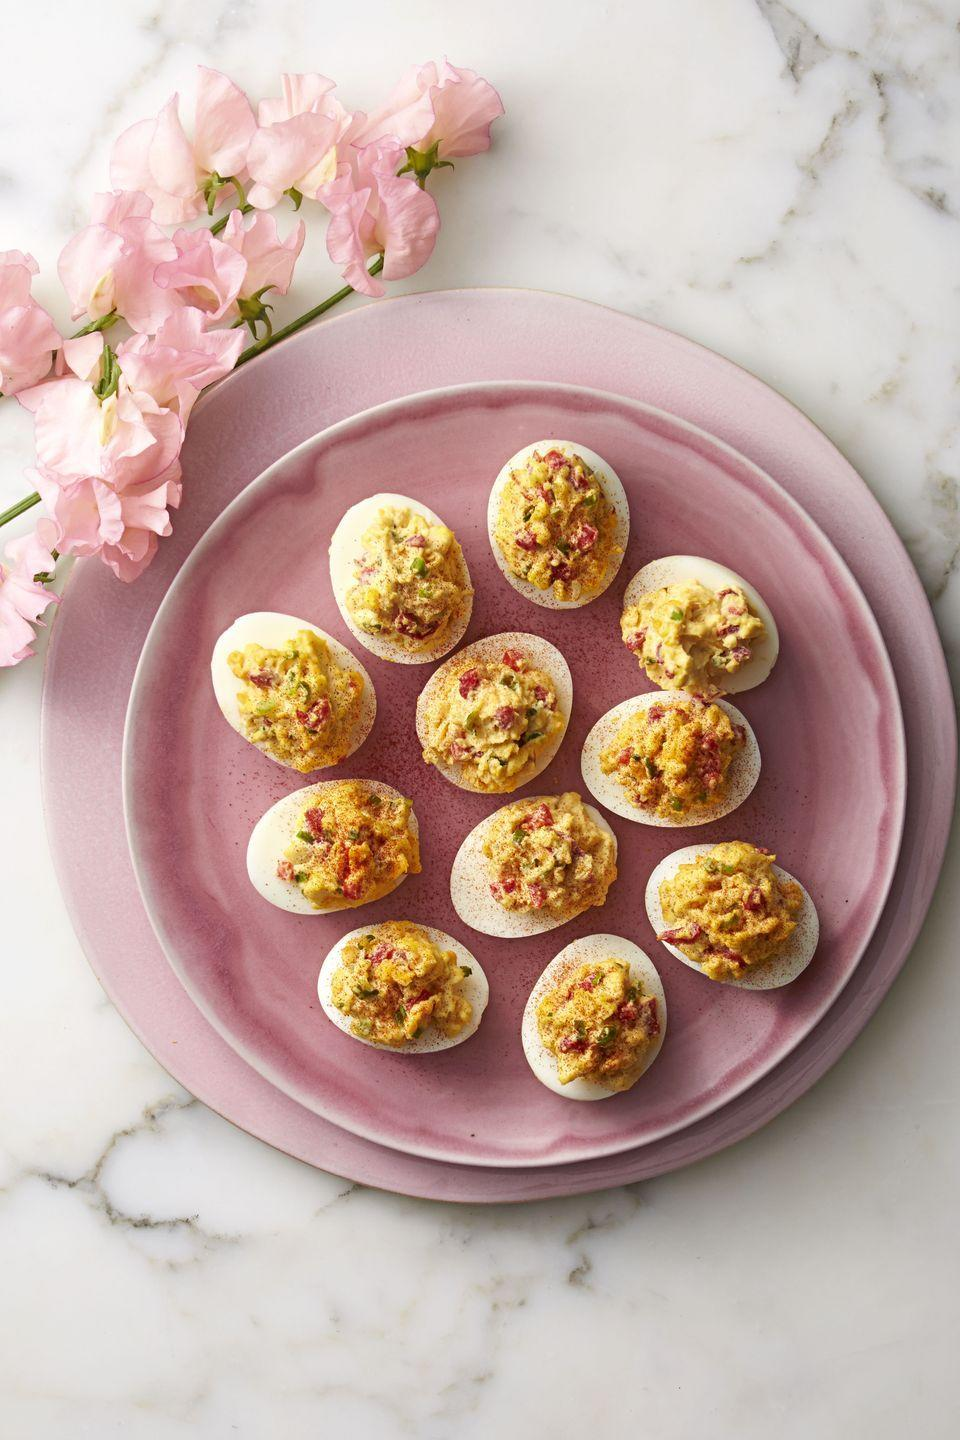 """<p>It's like rolling two classic Southern snacks into one. You can make these stuffed eggs up to a day in advance; simply serve when guests arrive.</p><p><strong>RELATED</strong>: <a href=""""https://www.goodhousekeeping.com/food-recipes/easy/g606/deviled-eggs-recipes/"""" rel=""""nofollow noopener"""" target=""""_blank"""" data-ylk=""""slk:30 More Ways to Make Delicious Deviled Eggs"""" class=""""link rapid-noclick-resp"""">30 More Ways to Make Delicious Deviled Eggs</a></p><p><a href=""""https://www.goodhousekeeping.com/food-recipes/a37454/pimiento-cheese-deviled-eggs-recipe/"""" rel=""""nofollow noopener"""" target=""""_blank"""" data-ylk=""""slk:Get the recipe for Pimiento-Cheese Deviled Eggs »"""" class=""""link rapid-noclick-resp""""><em>Get the recipe for Pimiento-Cheese Deviled Eggs <em><em>»</em></em></em></a><em> <br></em></p>"""